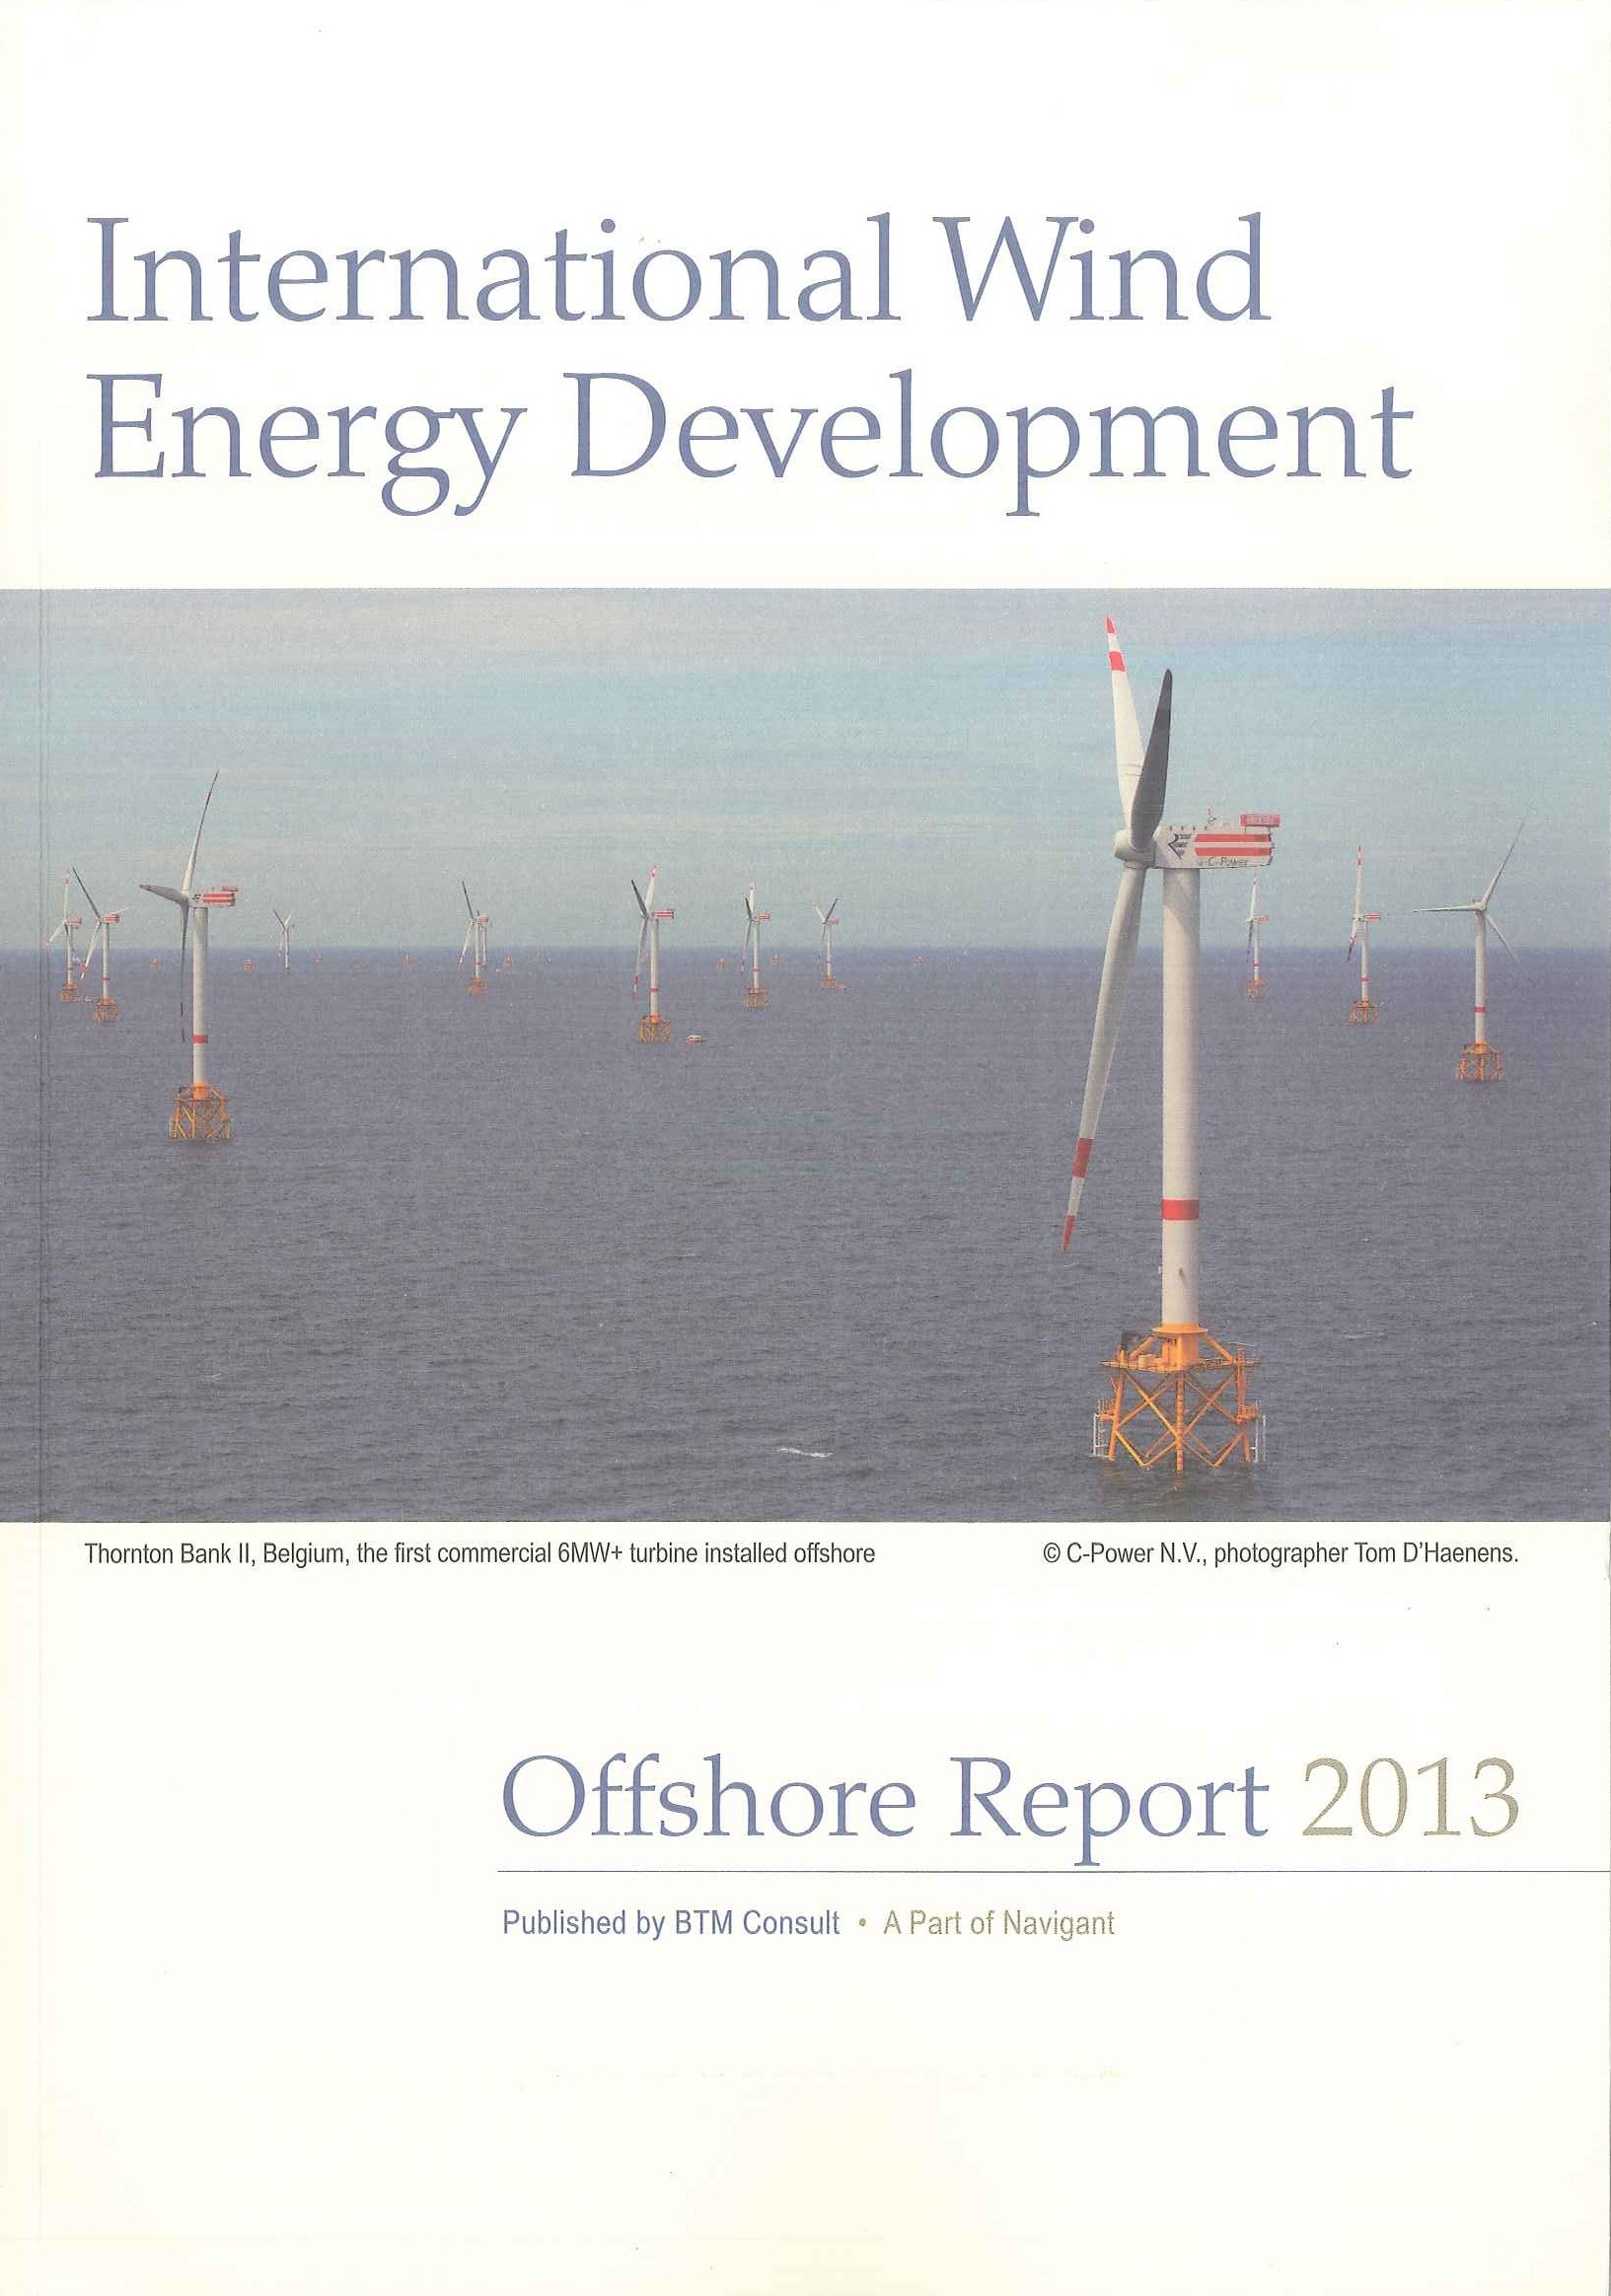 International wind energy development:offshore report 2013